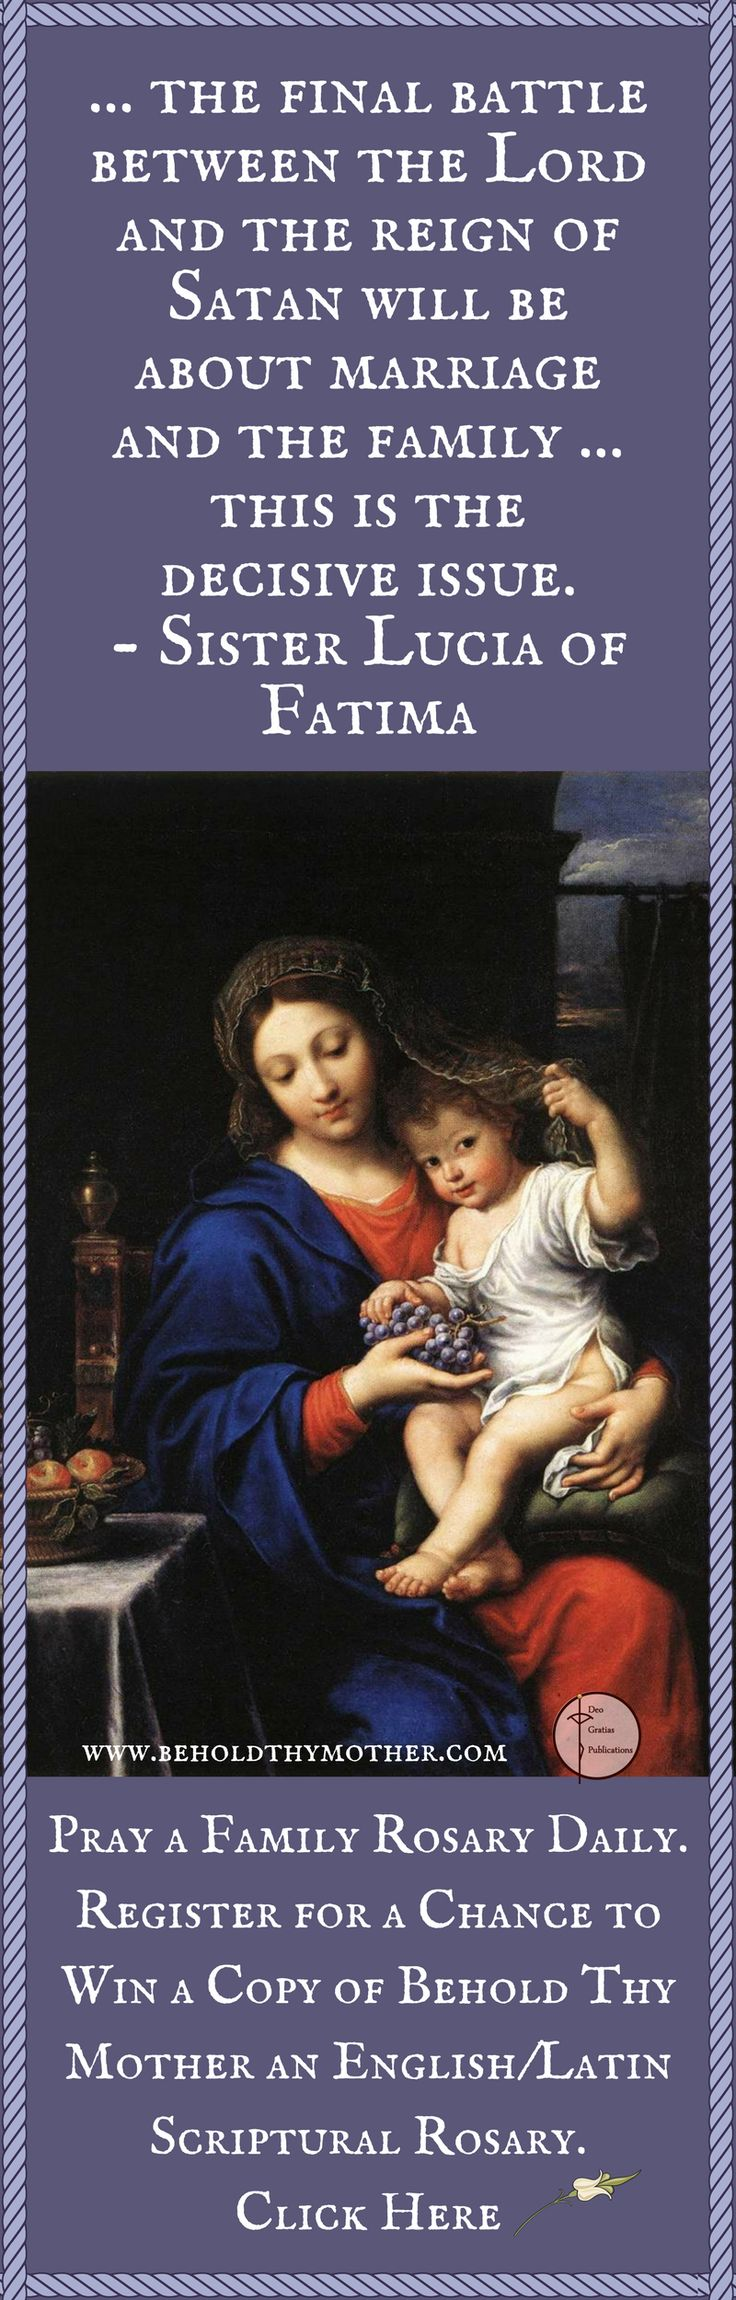 "Pierre Mignard painting. Register for a chance to win a free copy of ""Behold Thy Mother"" and English/Latin Scriptural Rosary book."